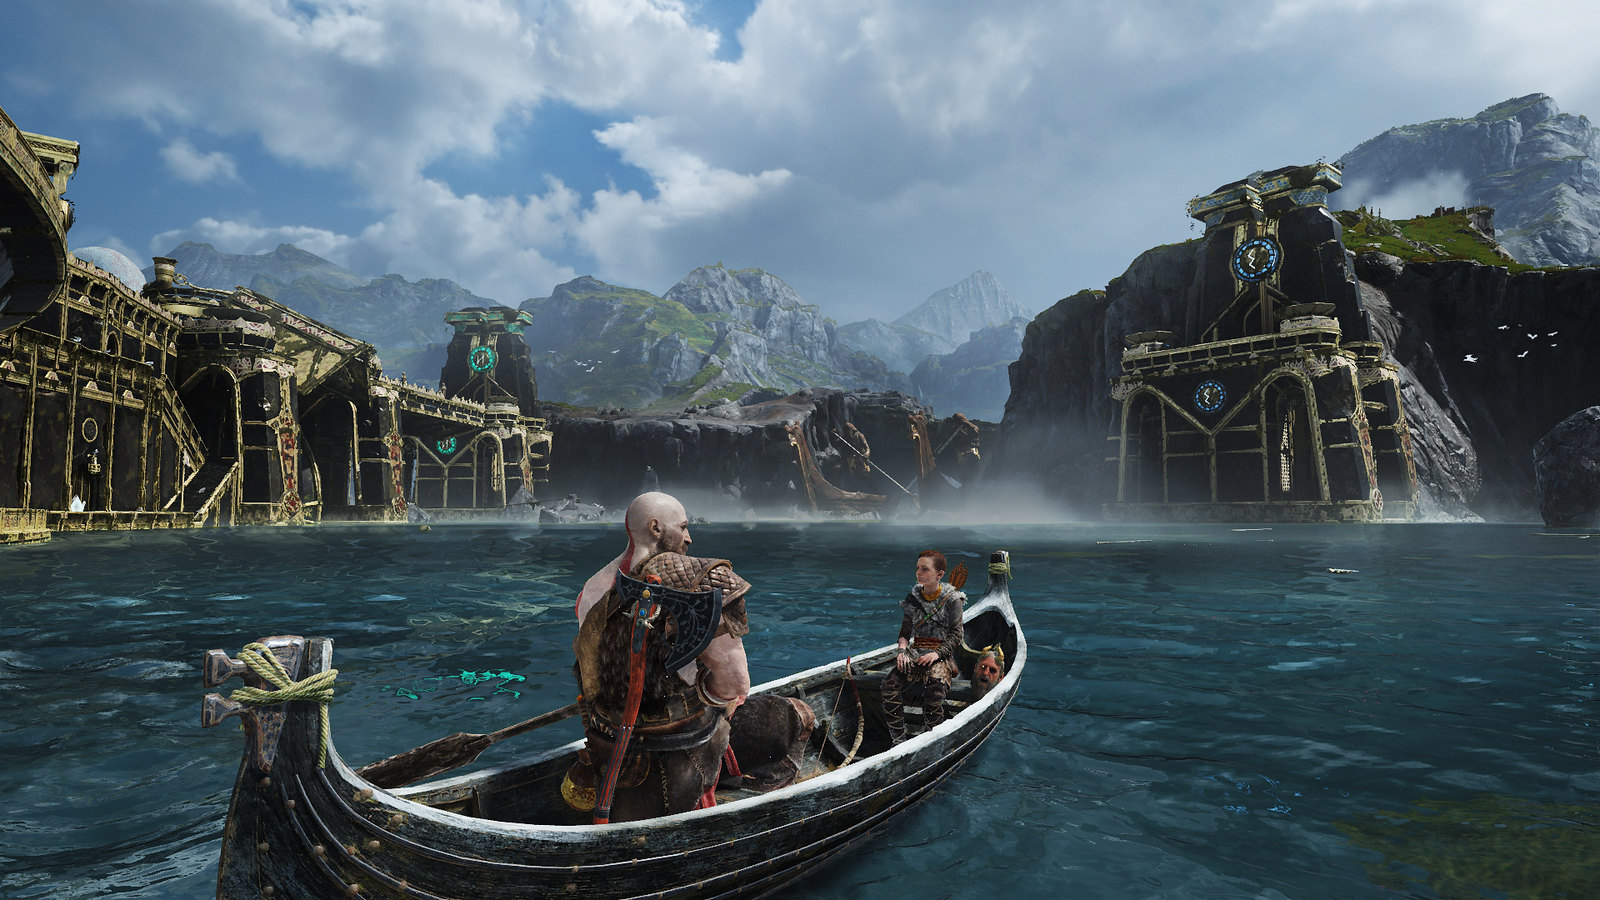 Under the Hood of the Boat in God of War